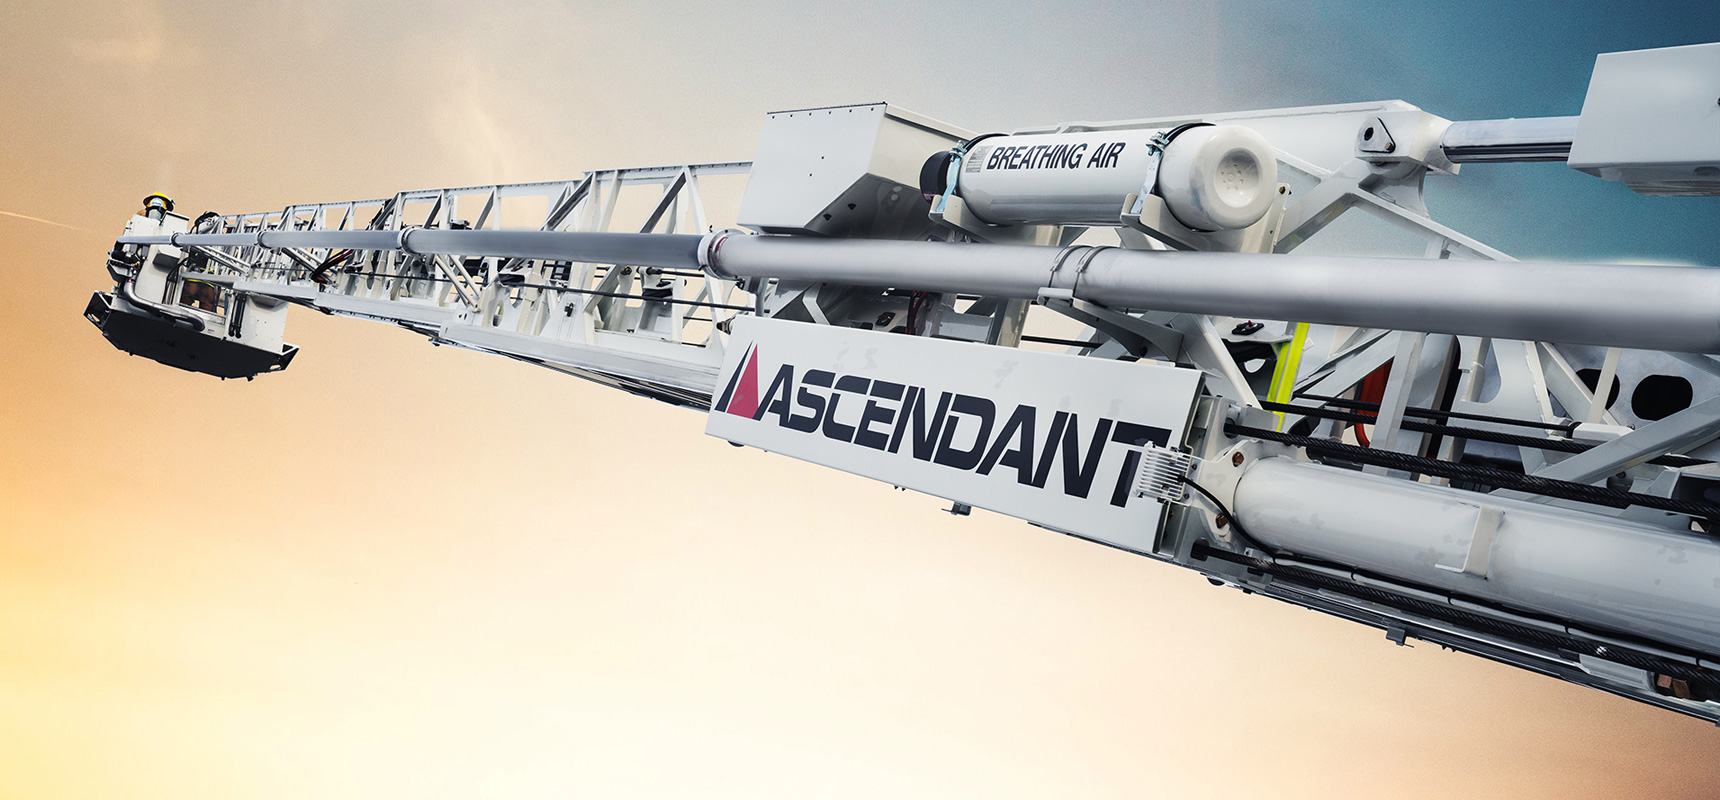 An ascendant aerial device is fully-extended in the air, showing the heavy-duty 100K psi high-strength steel design.